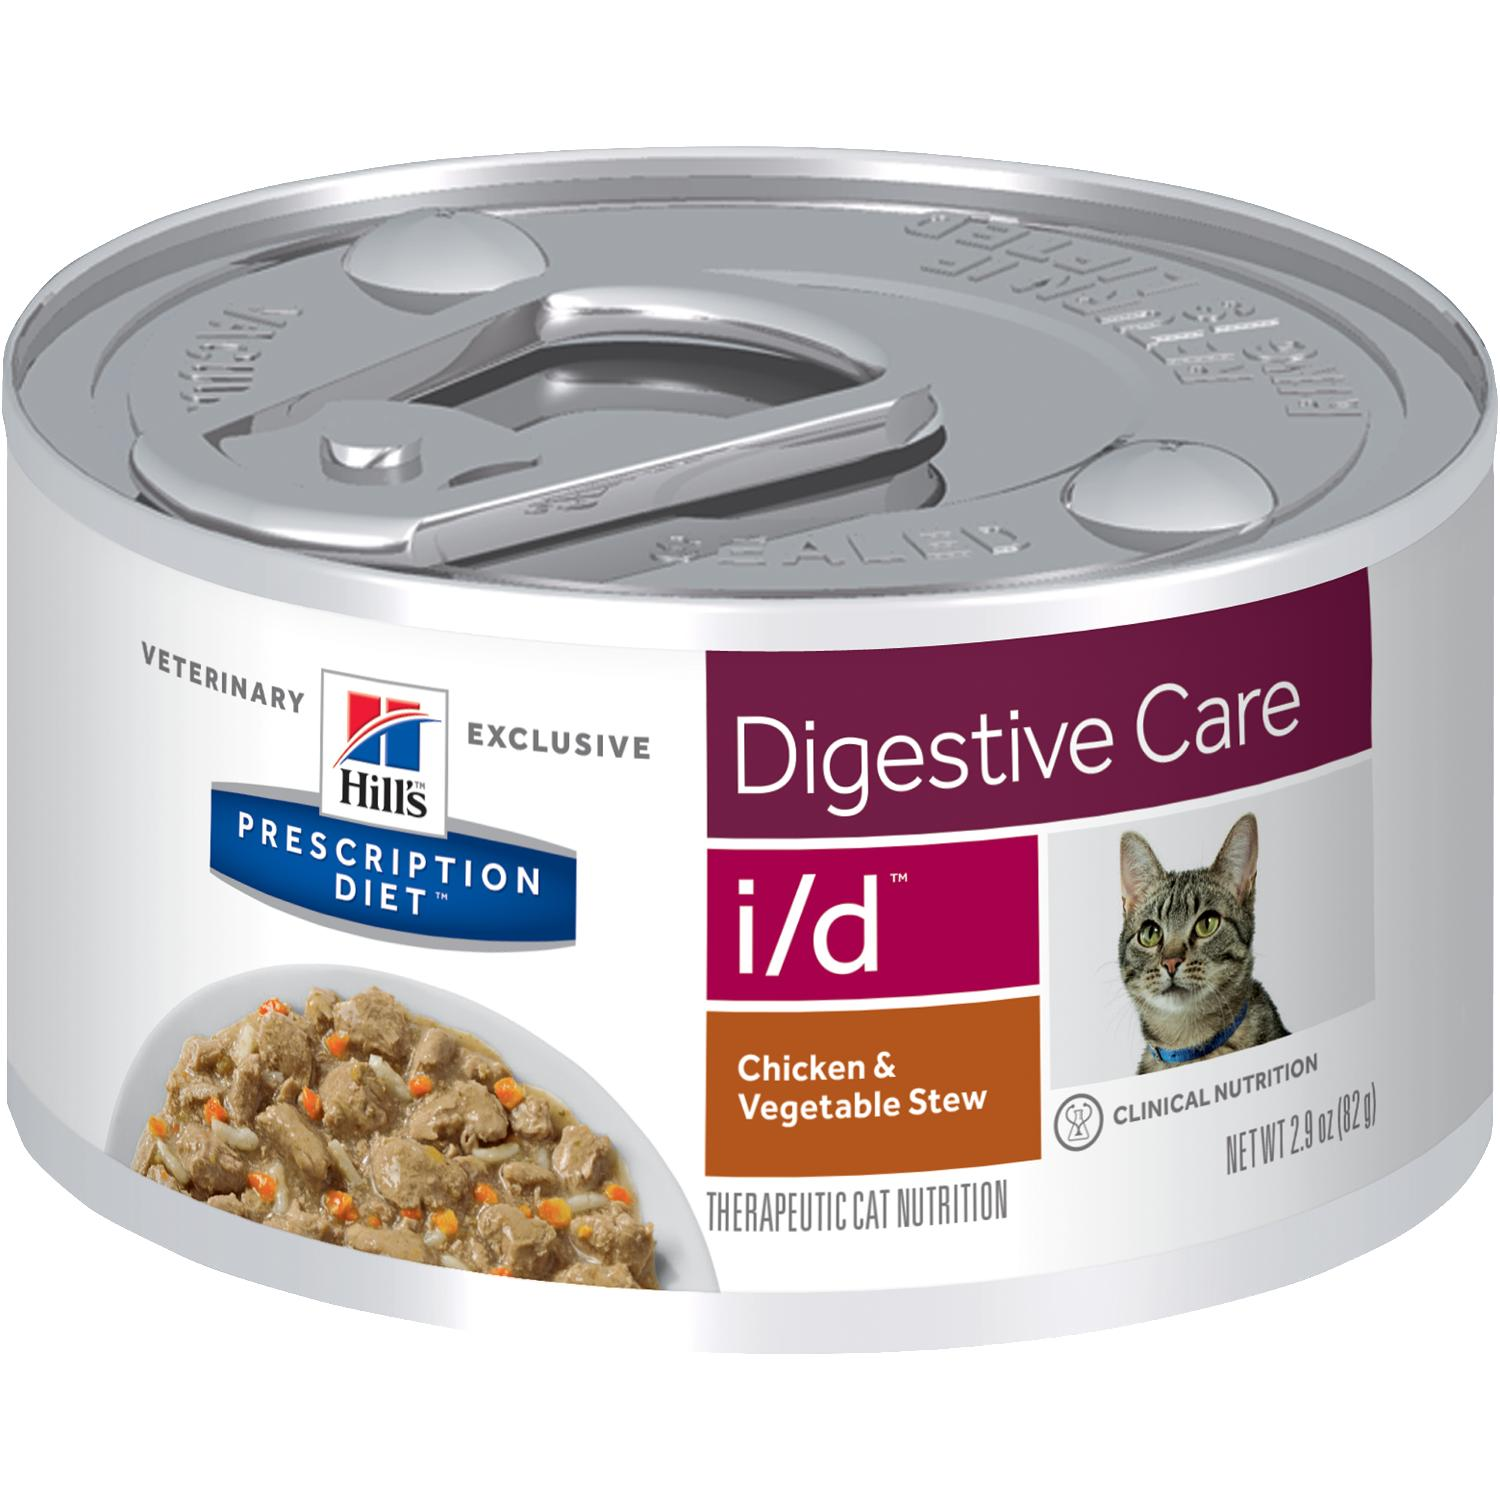 pd id feline chicken and vegetable stew canned productShot zoom